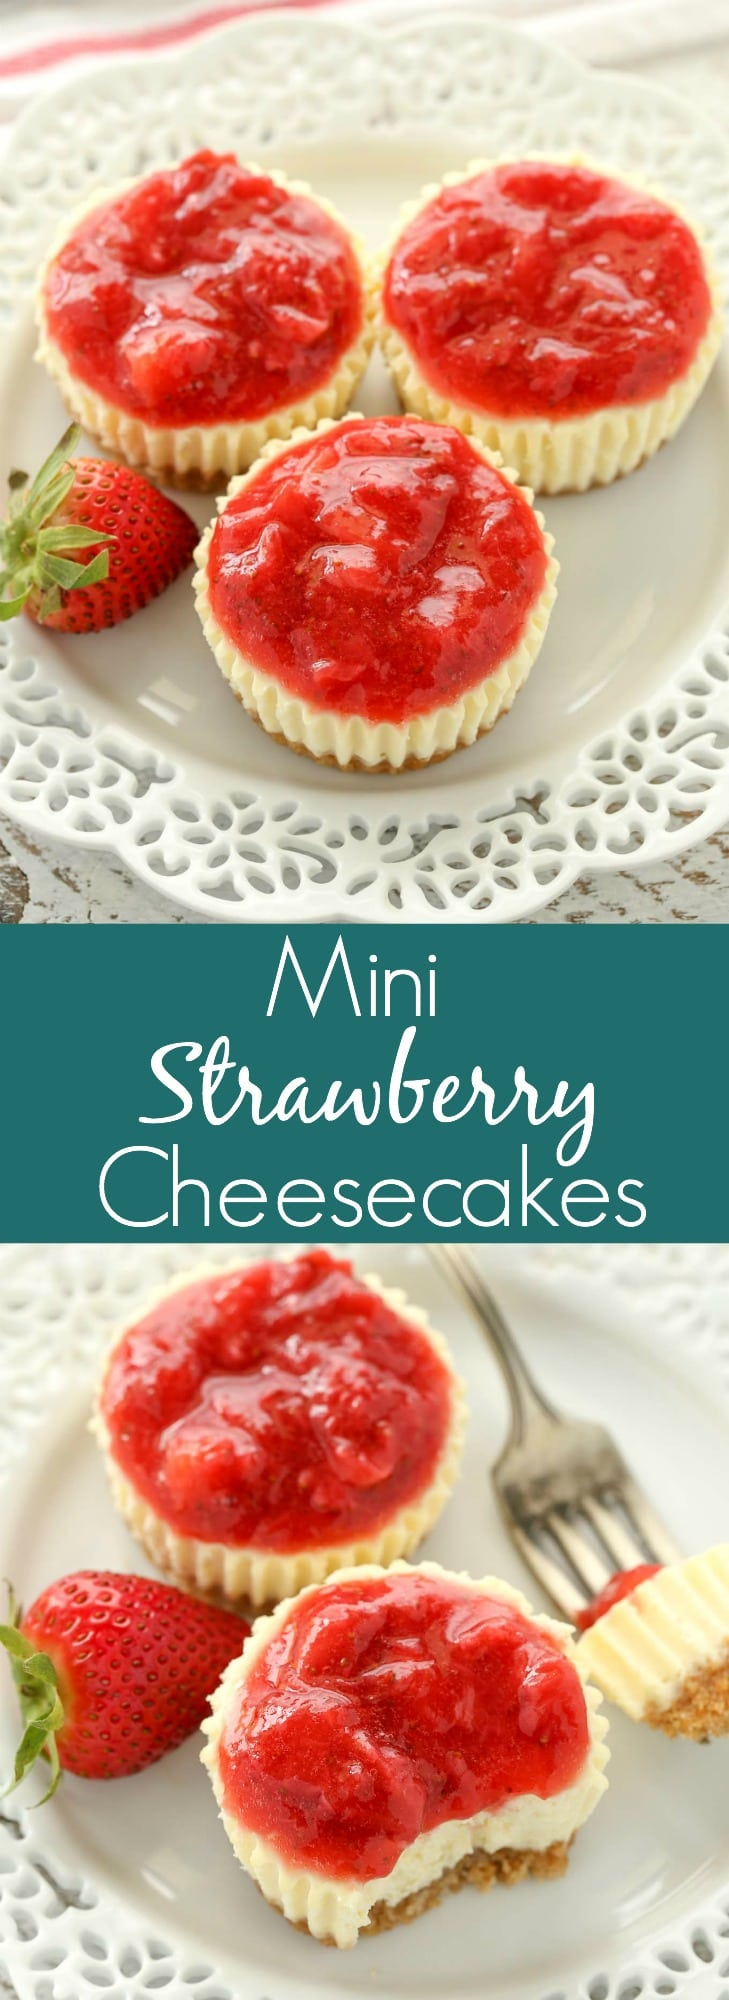 These Mini Strawberry Cheesecakes feature an easy homemade graham cracker crust topped with a smooth and creamy cheesecake filling and strawberry sauce. Perfect for an easy spring or summer dessert!